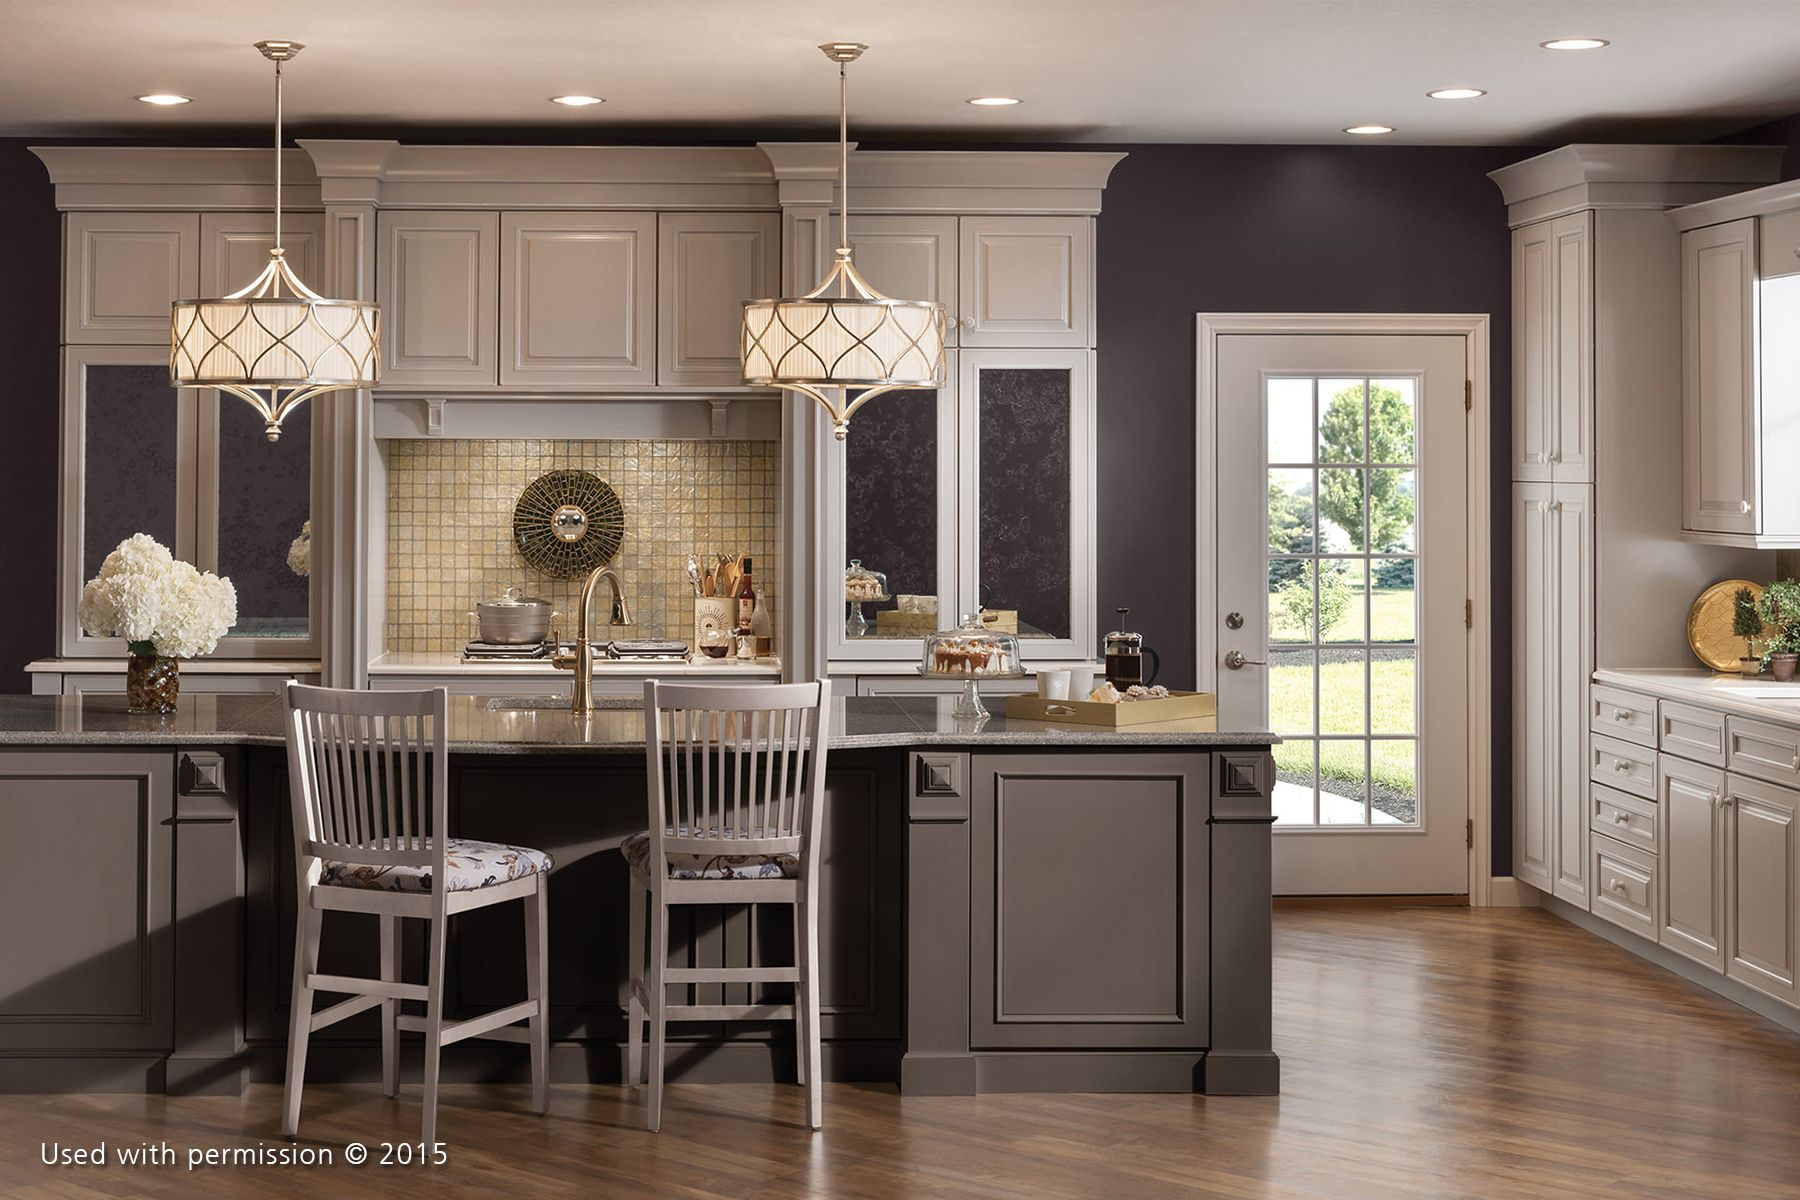 design your own kitchen cabinets layout for free how online